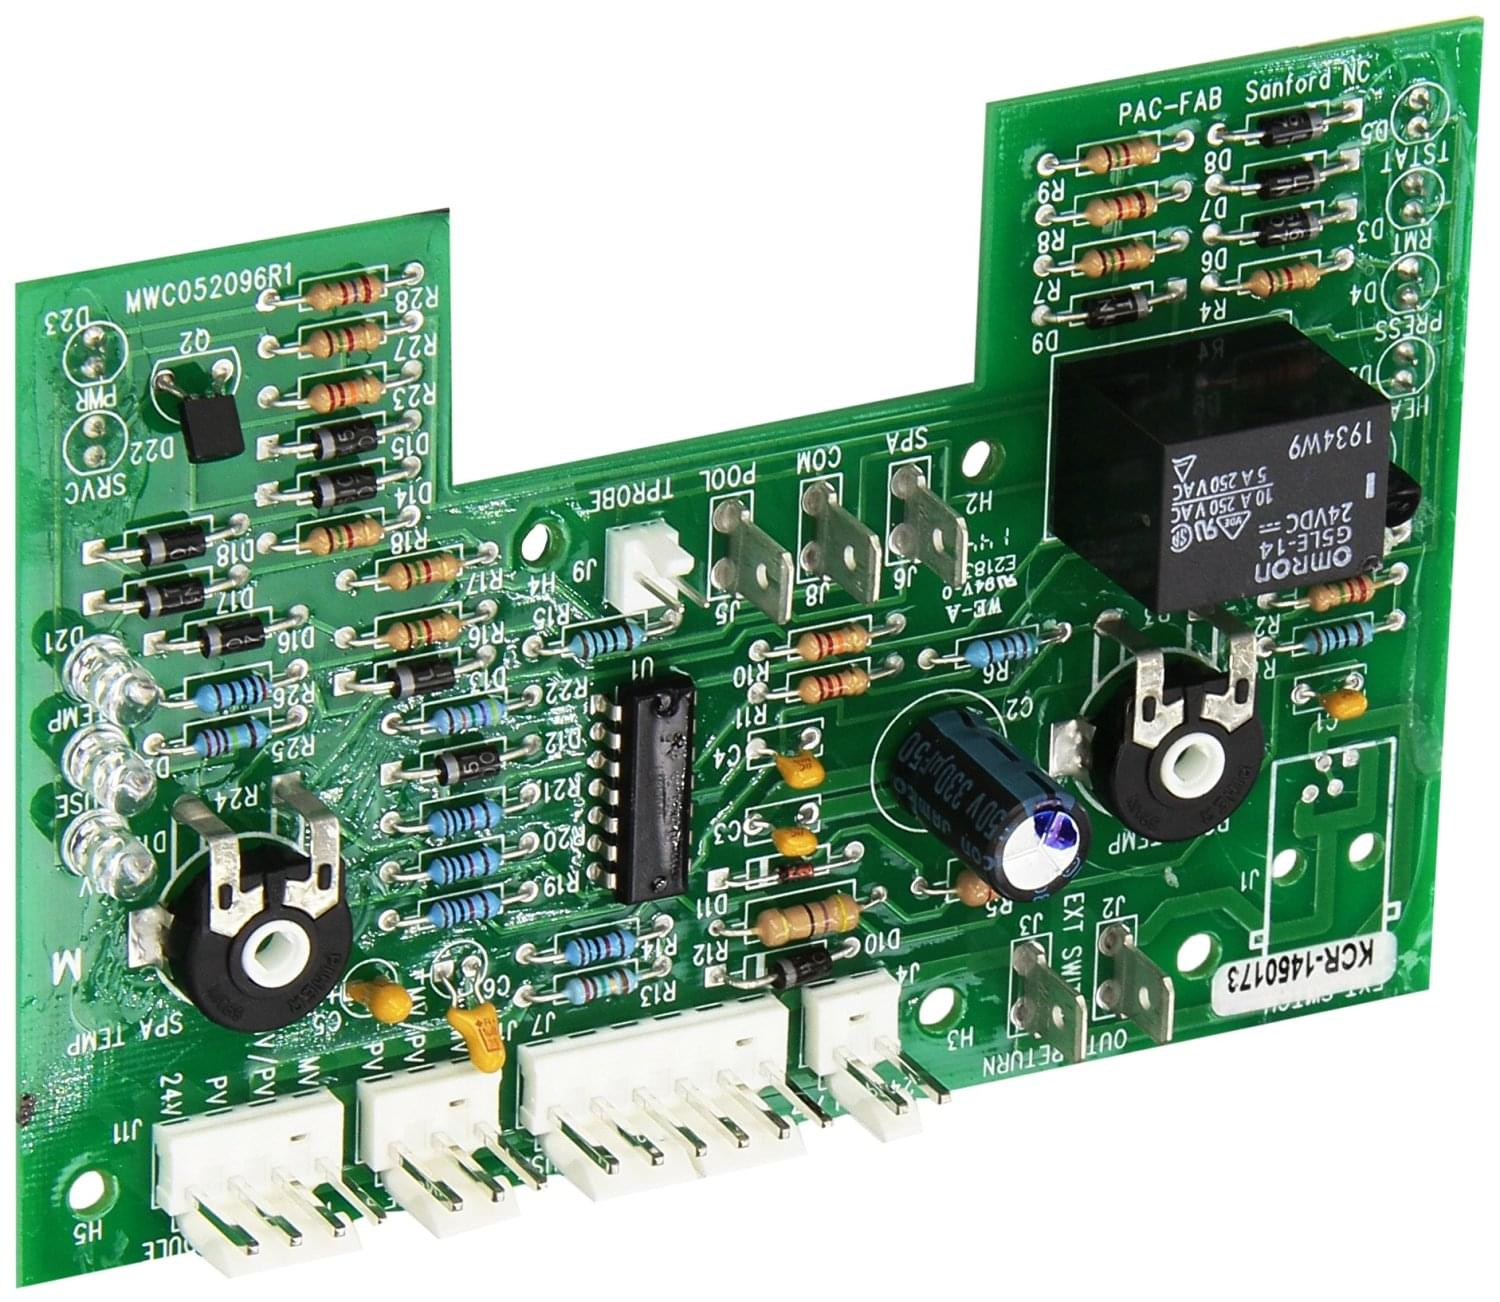 Pentair 470179 Electronic Thermostat Circuit Board